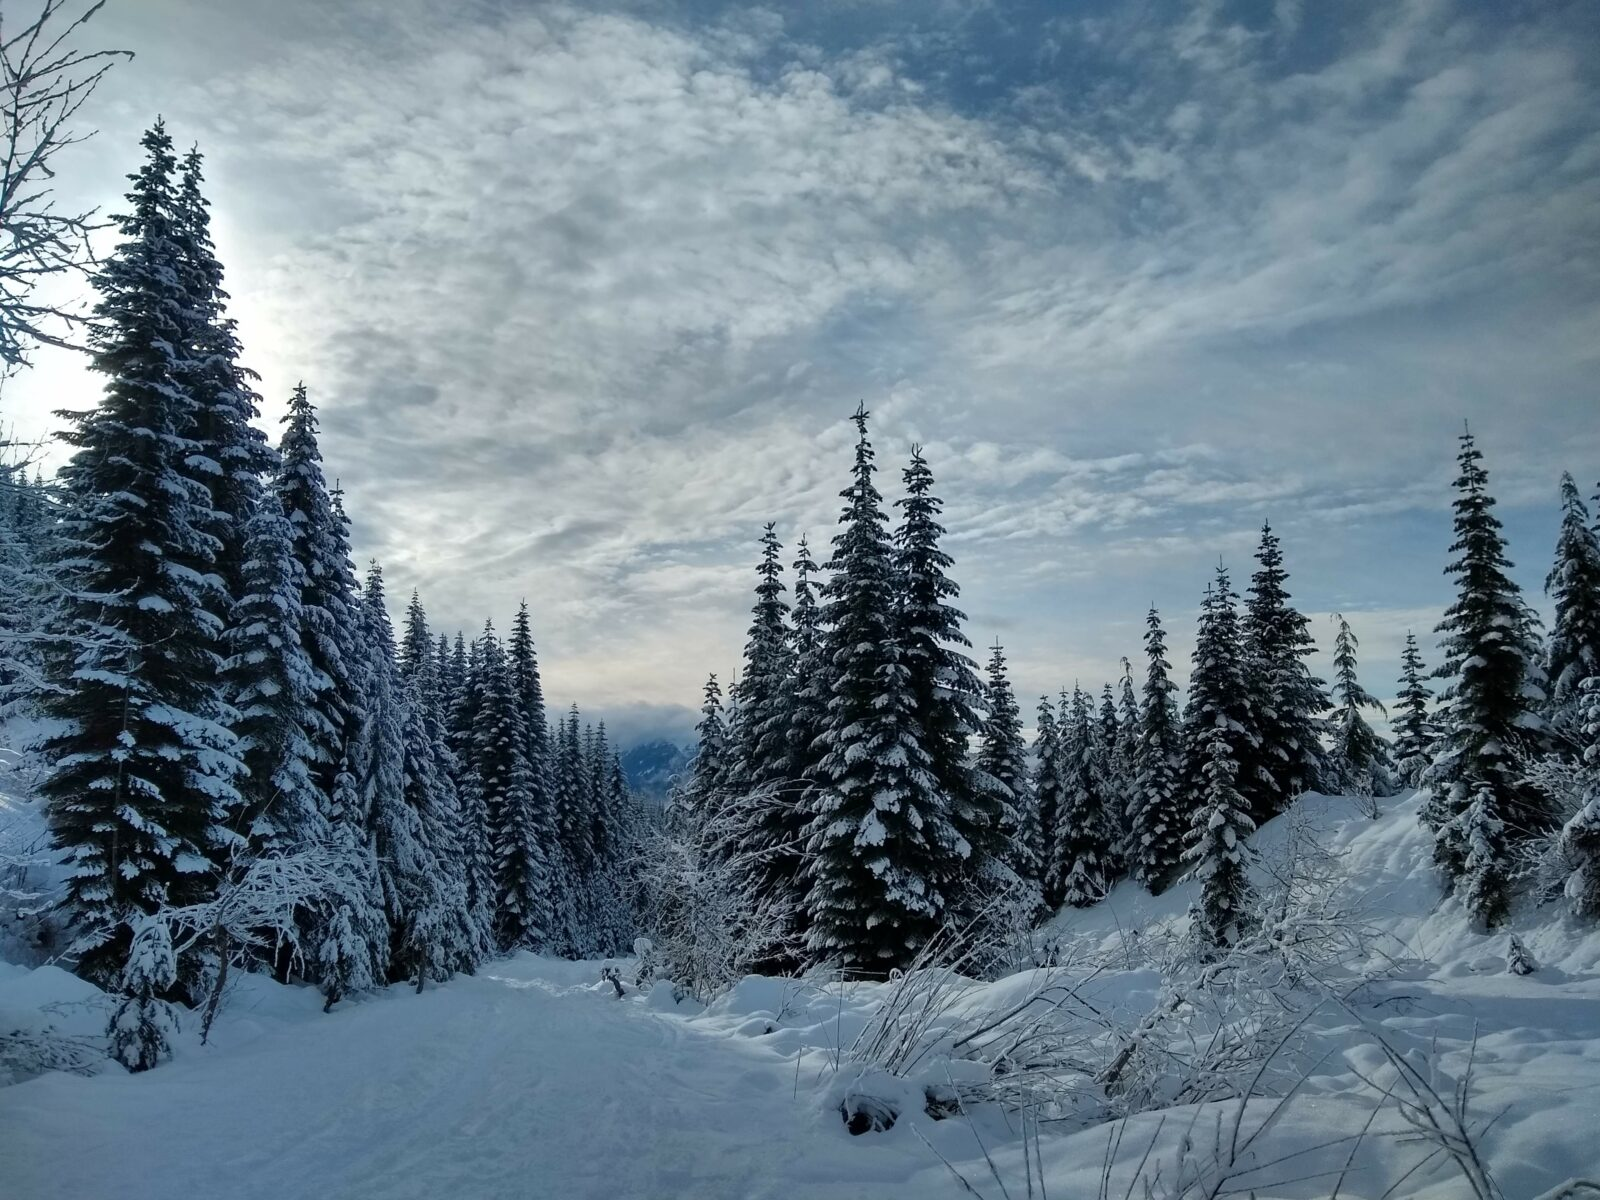 Snow covered evergreen trees along the side of a snow covered trail on a cloudy day. A snowshoe outing at Snoqualmie Pass is a great winter day trip from Seattle